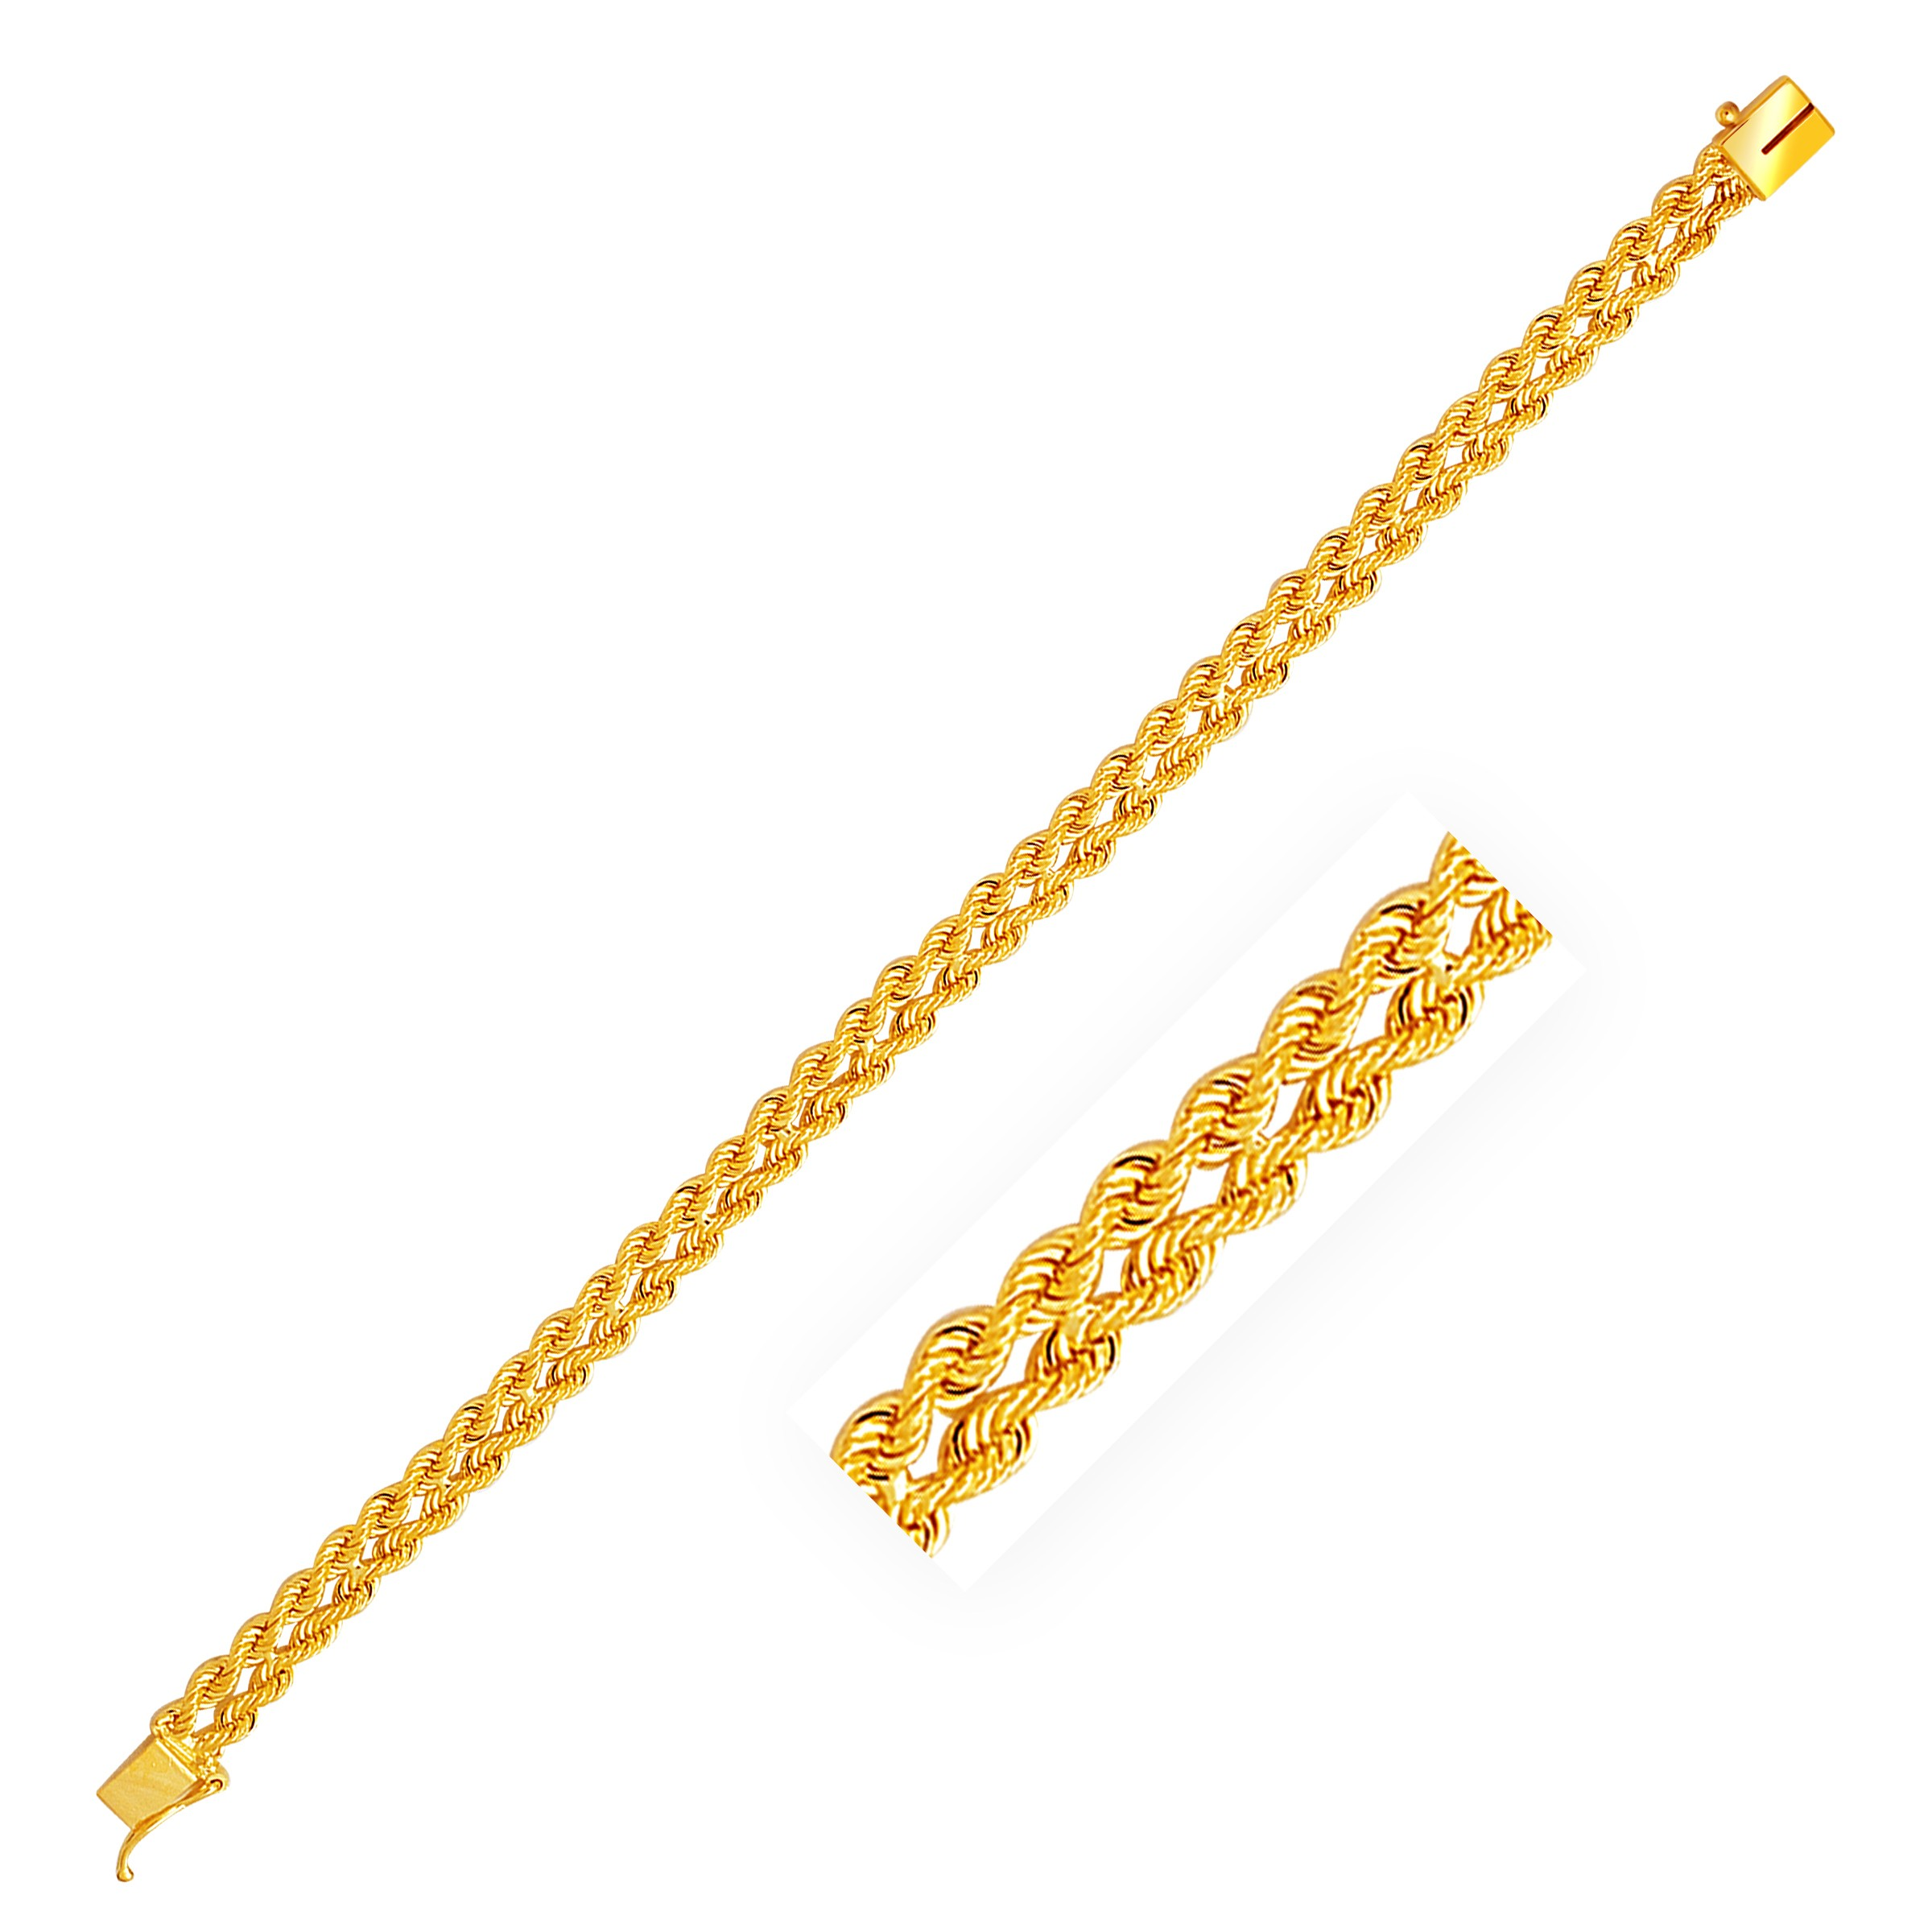 Chain clipart gold bracelet. Two row rope in